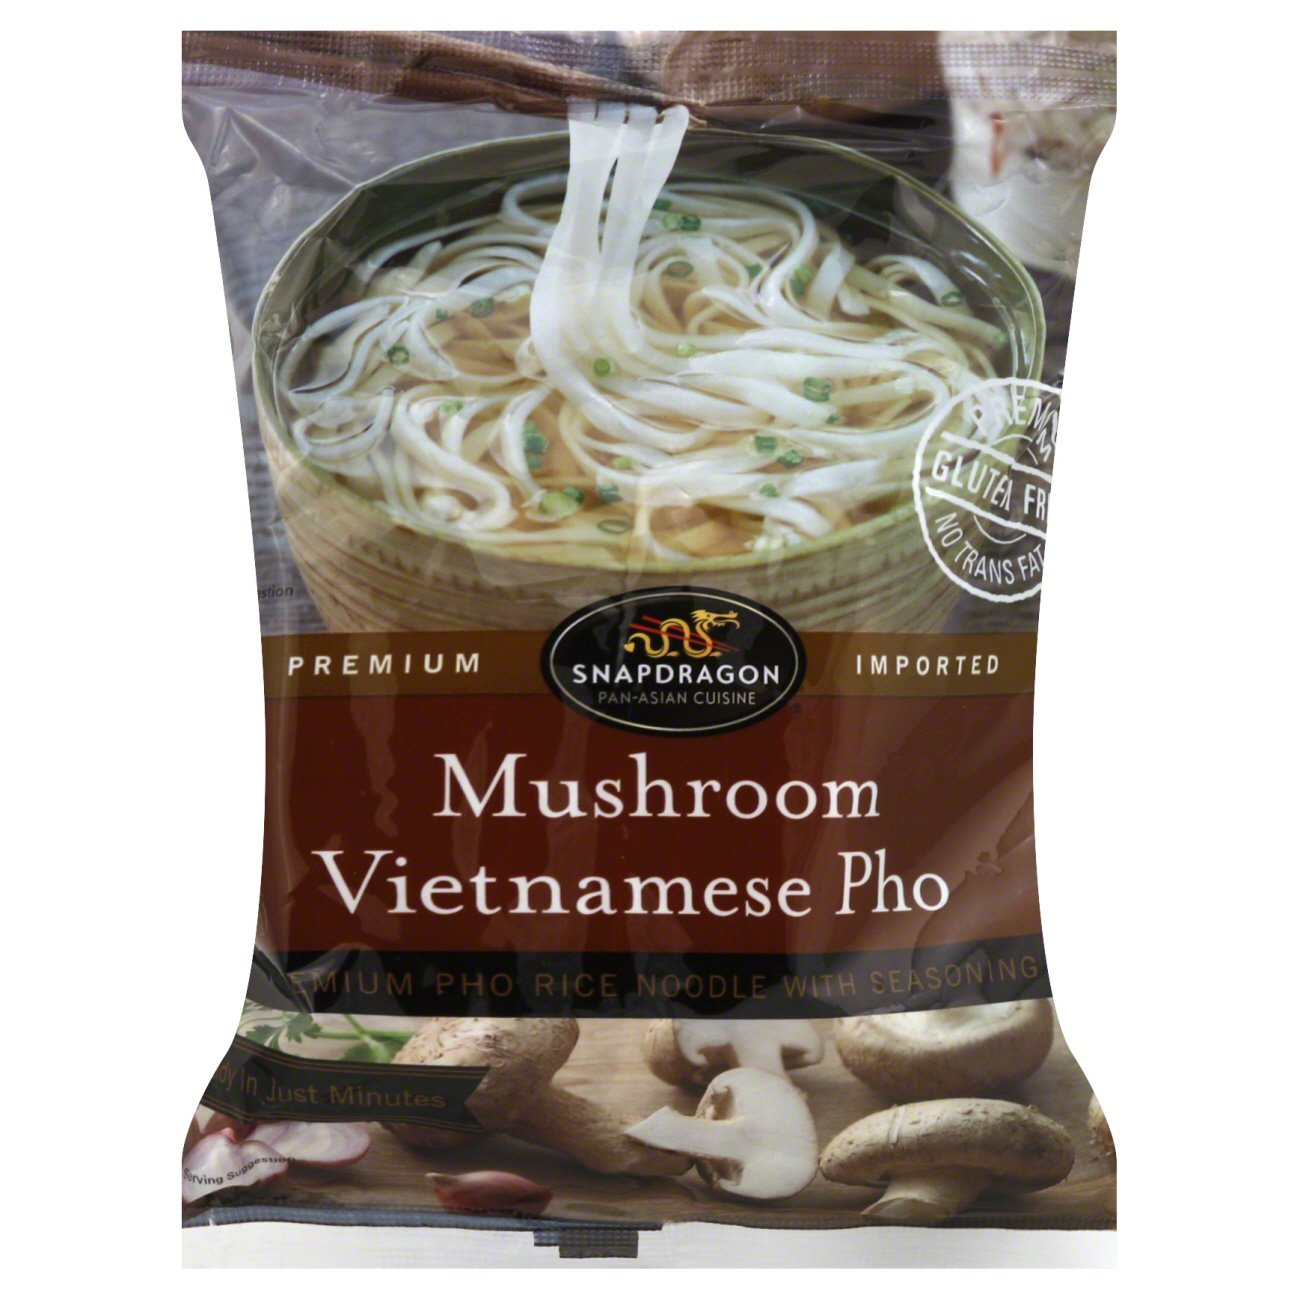 Snapdragon Mushroom Vietnamese Pho Shop Soups Chili At H E B